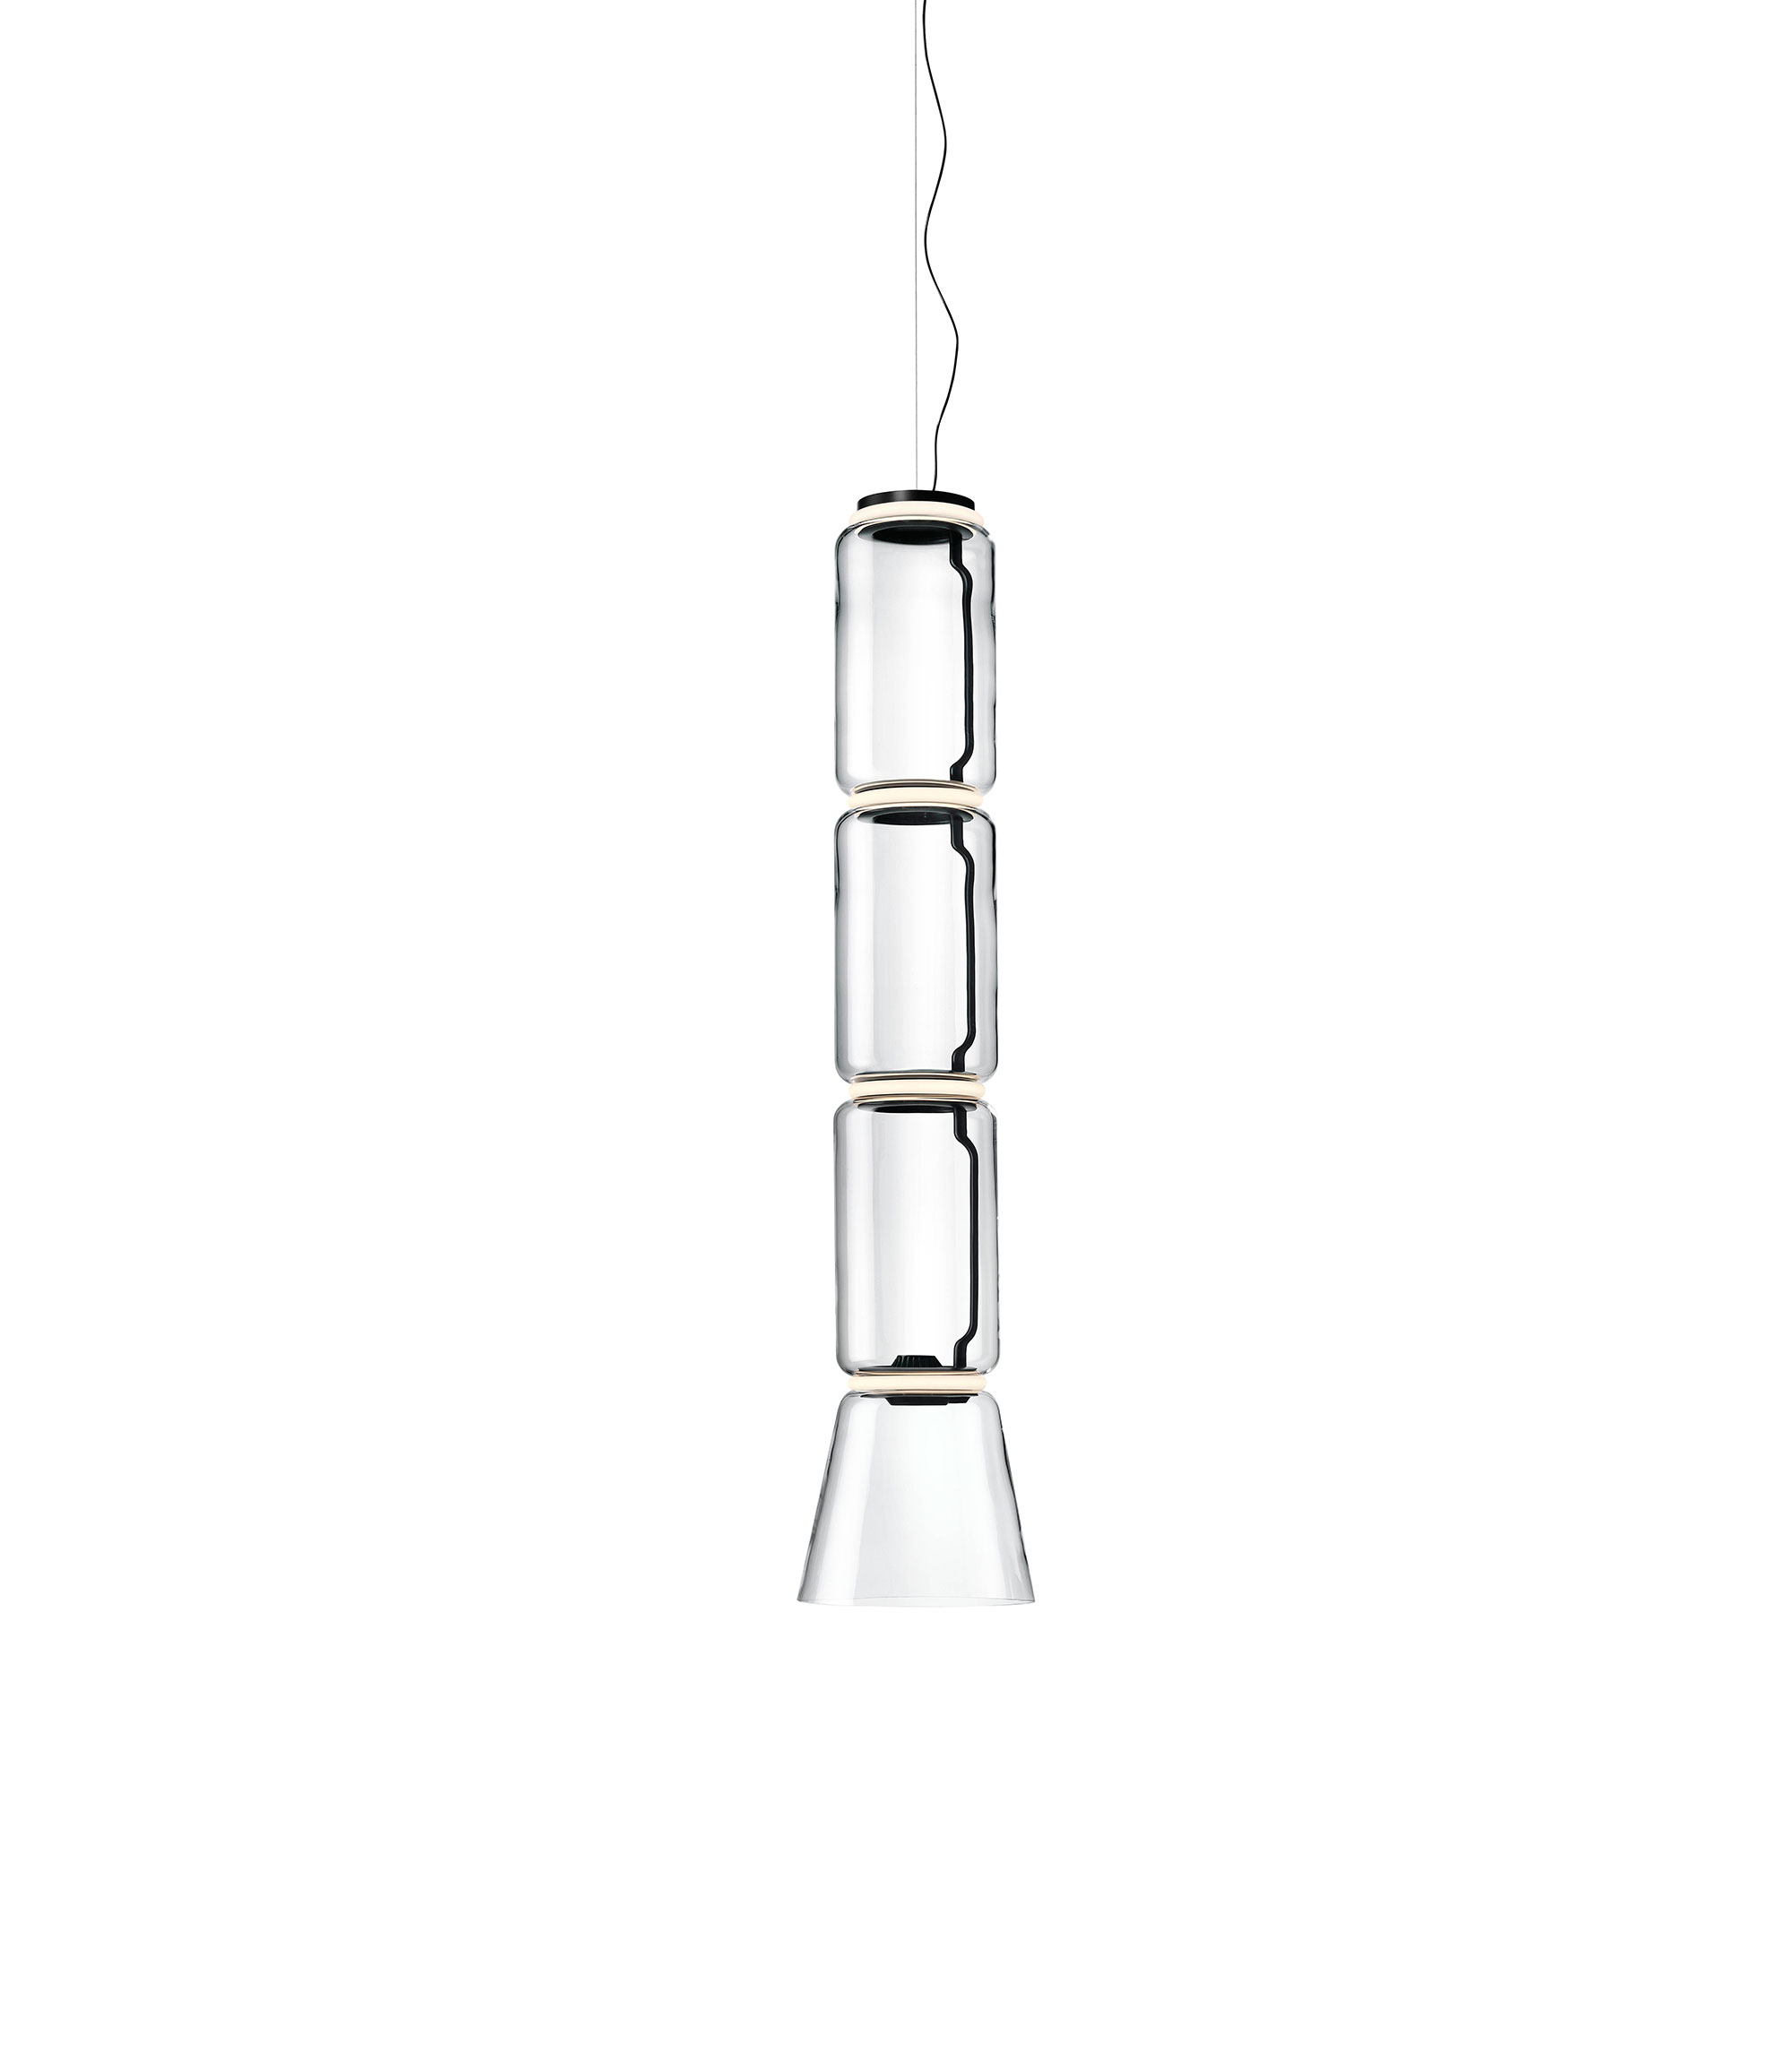 Noctambule 3 low cylinders cone suspension grcic flos F0271000 product still life big